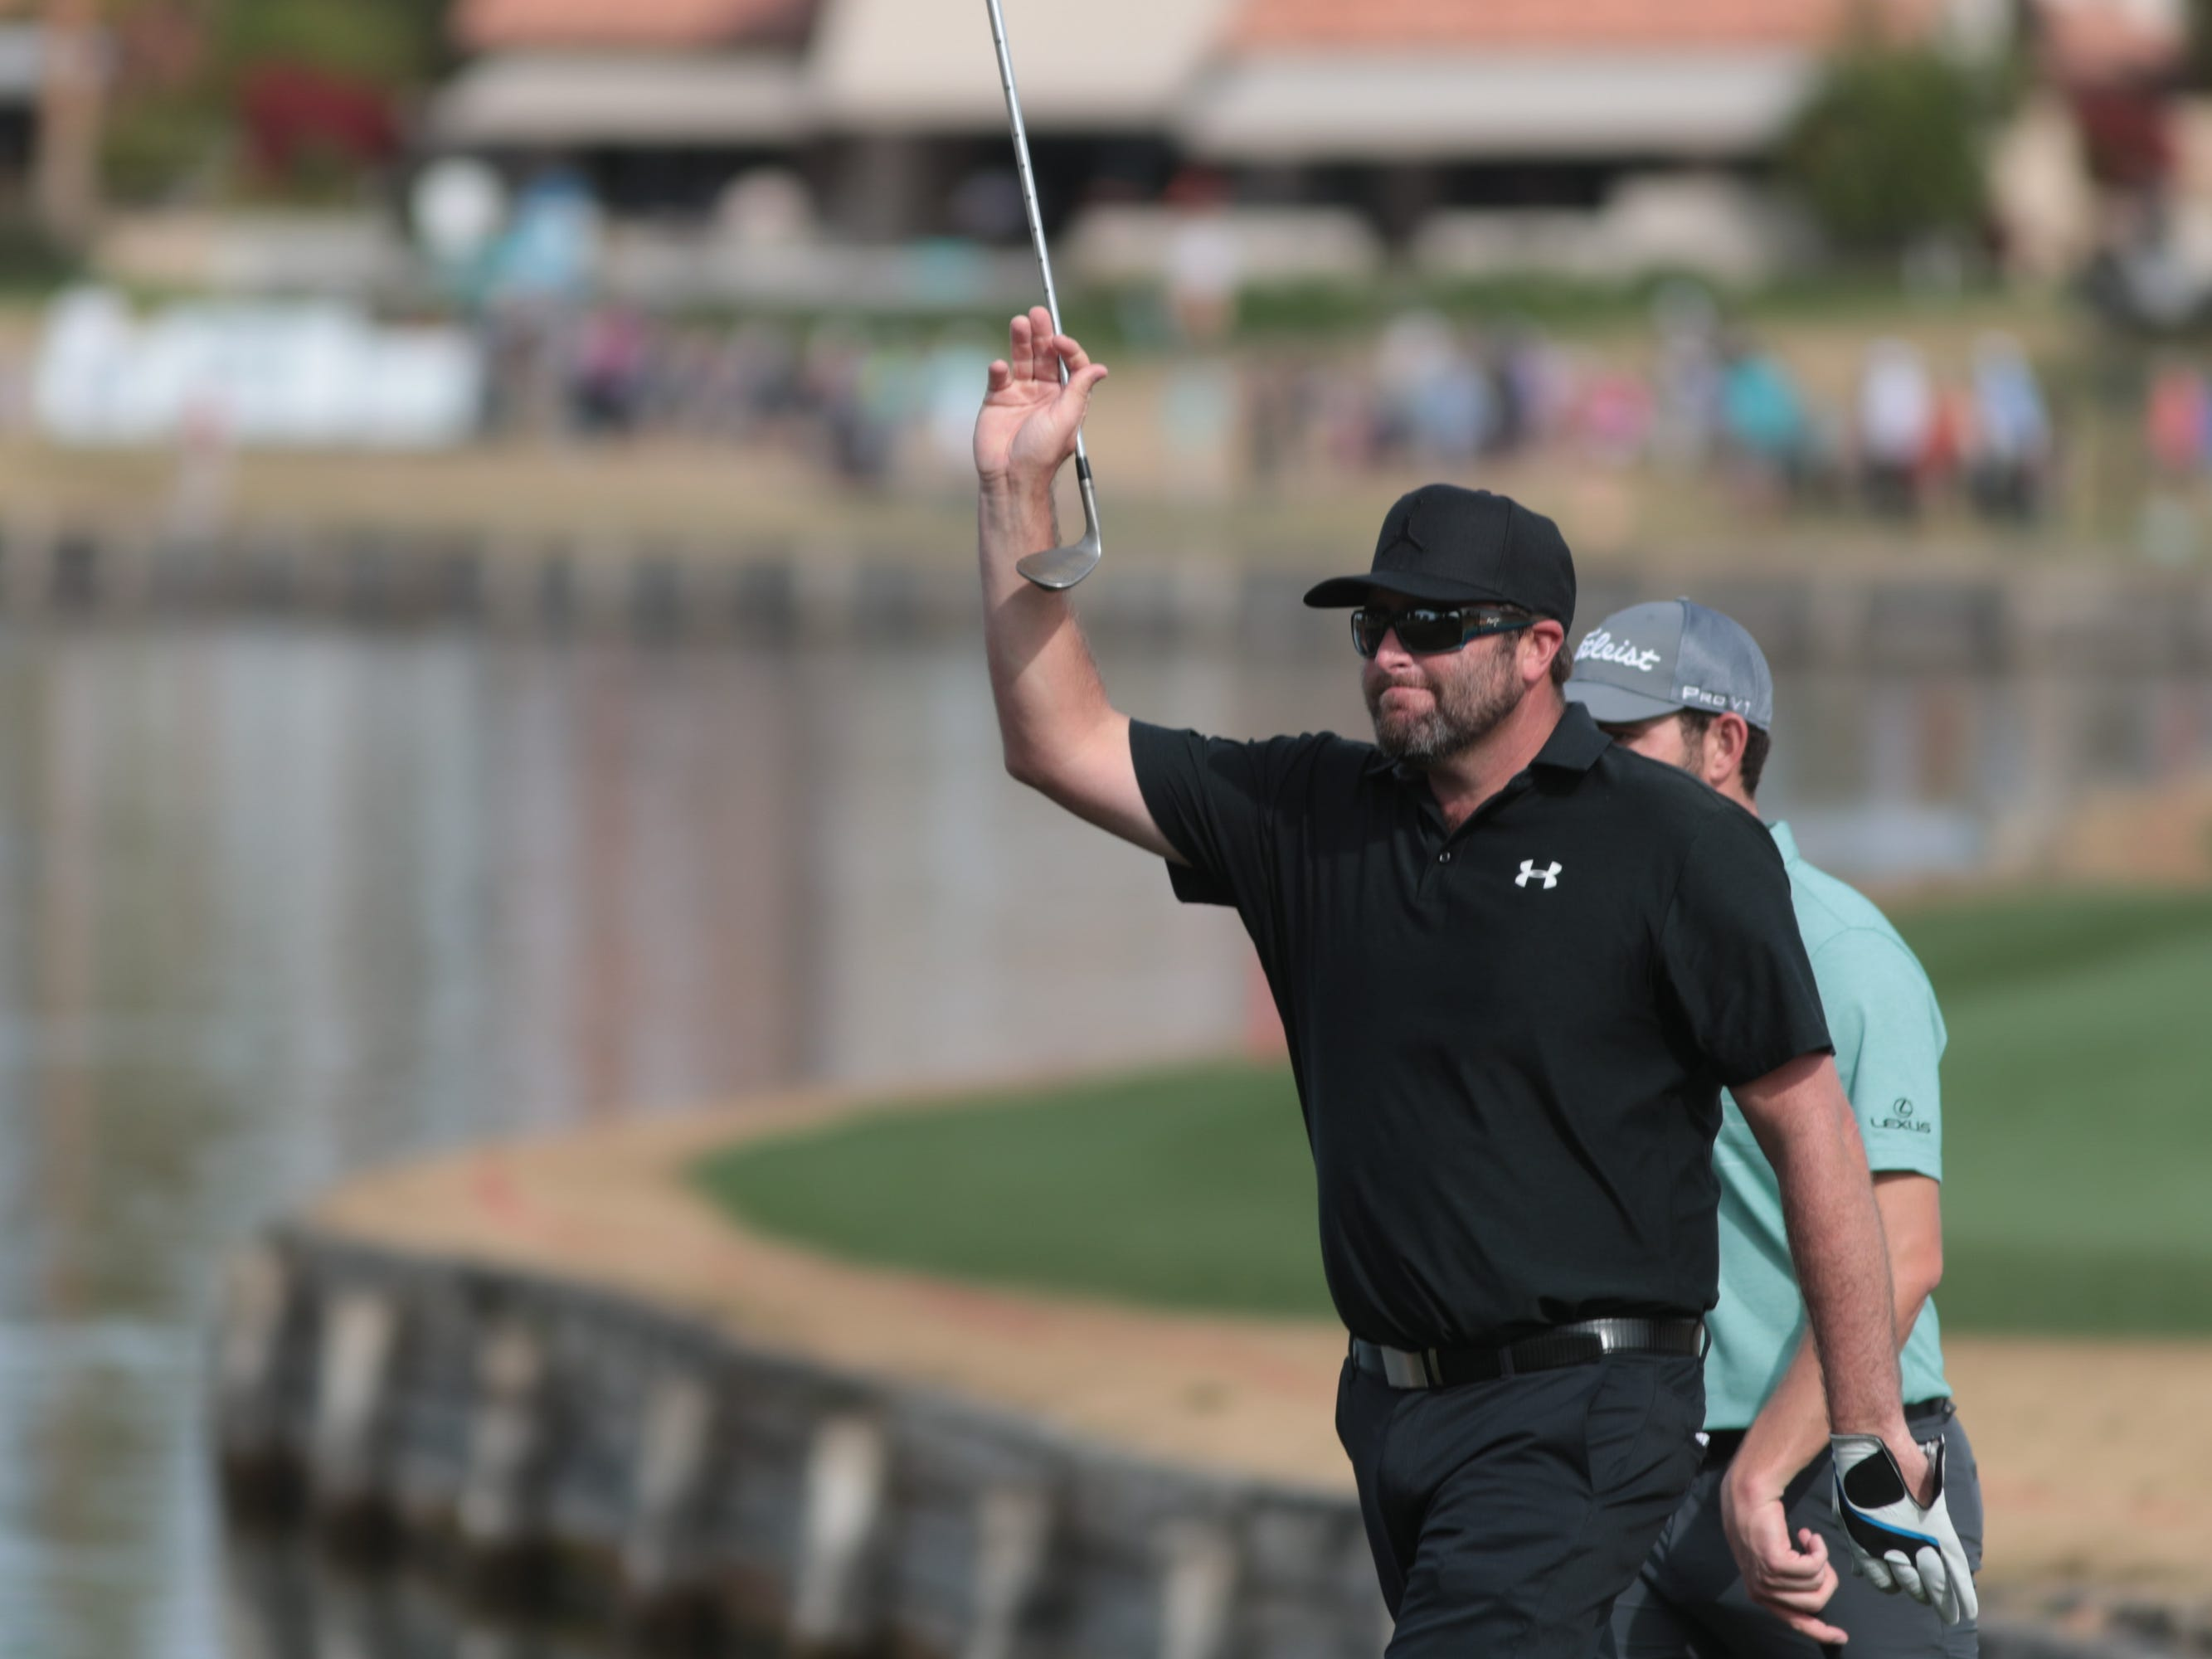 Steve Marino celebrates after making an eagle on the 7th hole of the 2019 Desert Classic, Sunday, January 20, 2019.